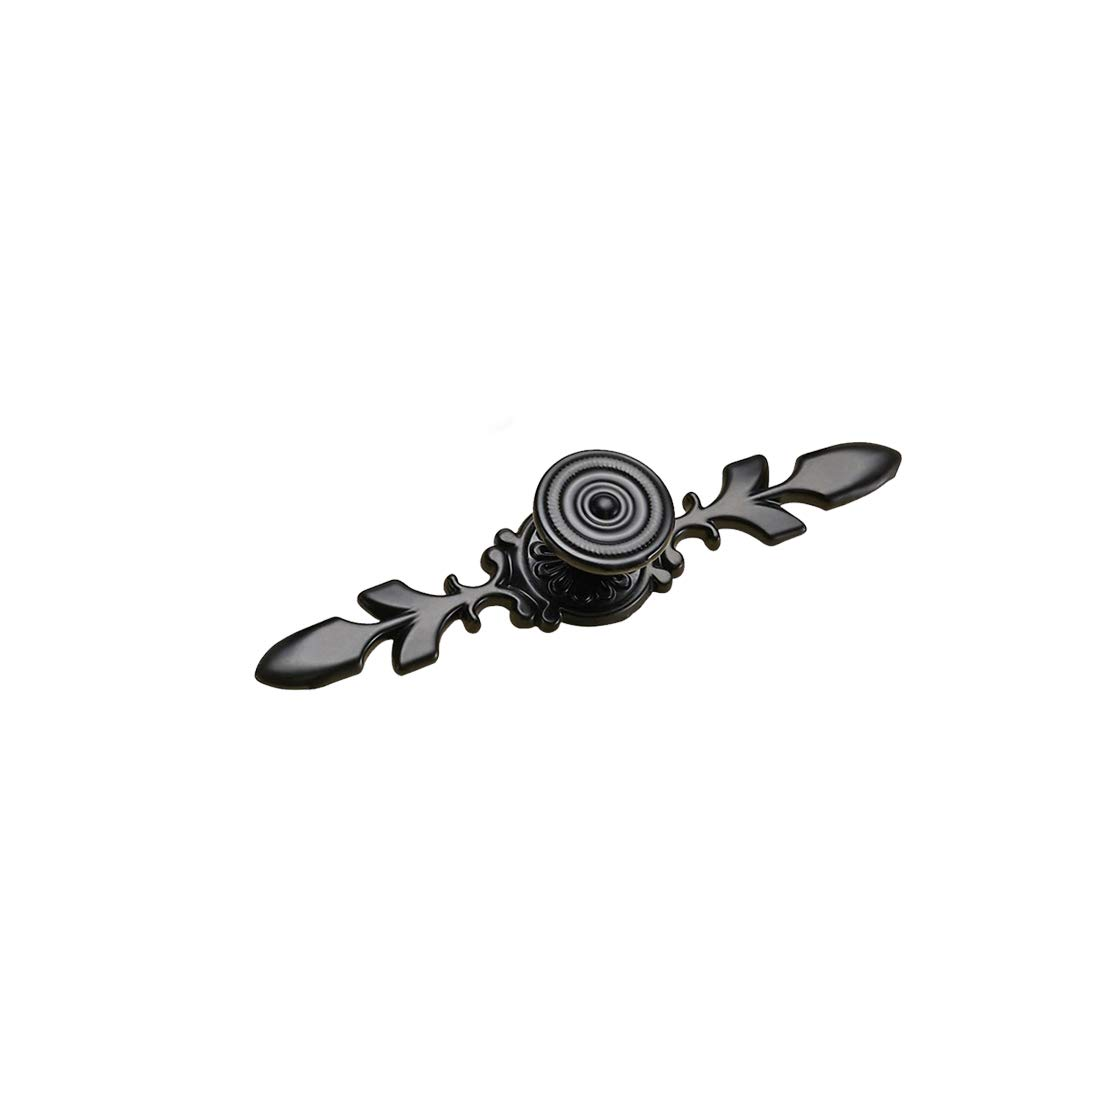 Autoly Bar Cabinet Pull Leaf Drawer Handles Knobs Single Hole Hardware for Kitchen Bathroom Cabinets Cupboard 4.7in 120mm Overall Length 6 Pack 9066